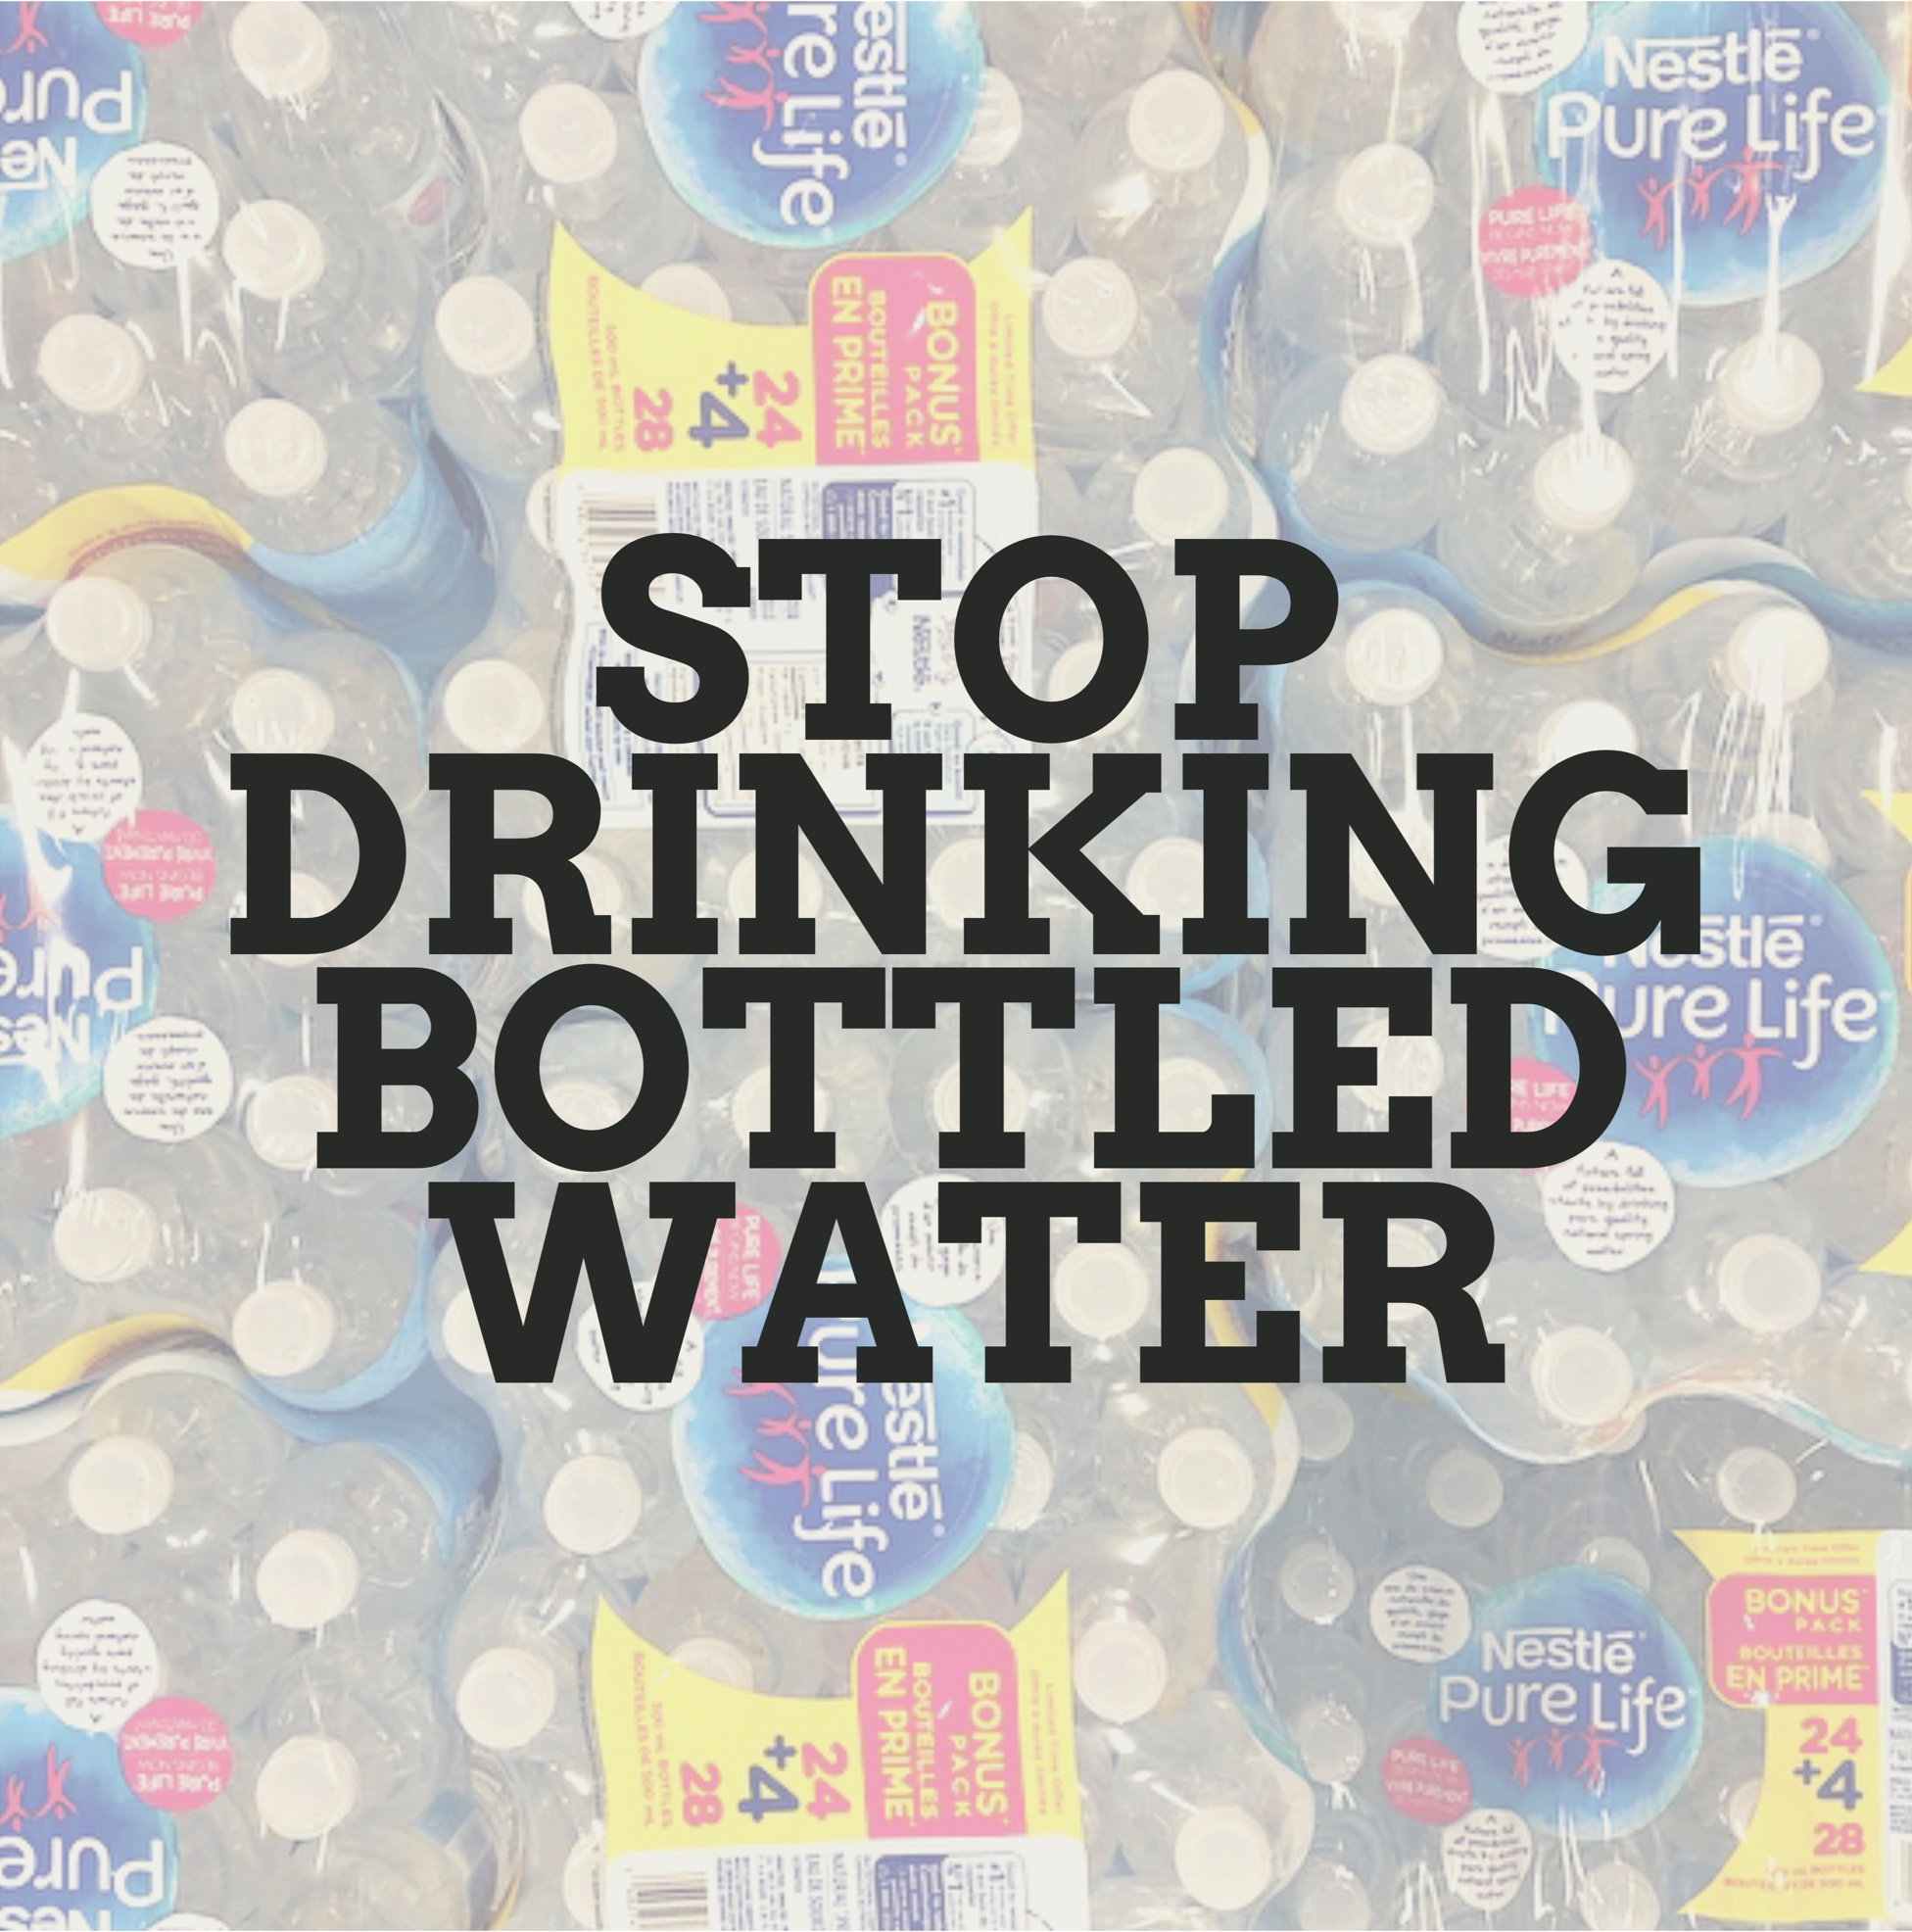 Stop Drinking Bottled Water.jpg